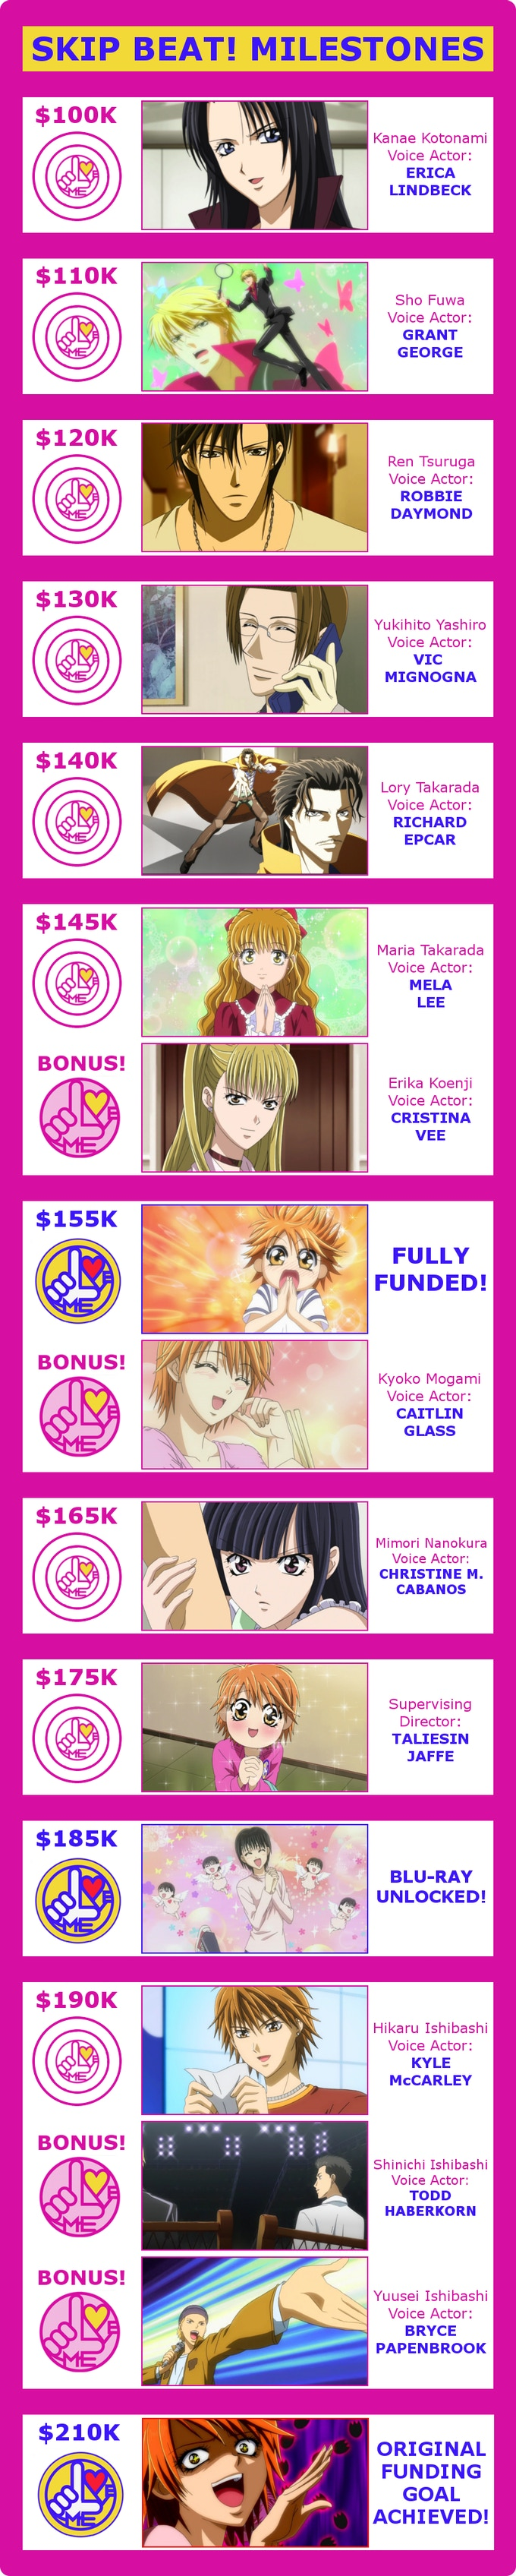 M. thank you for this graphic!!! We did it!!! $210K!!!